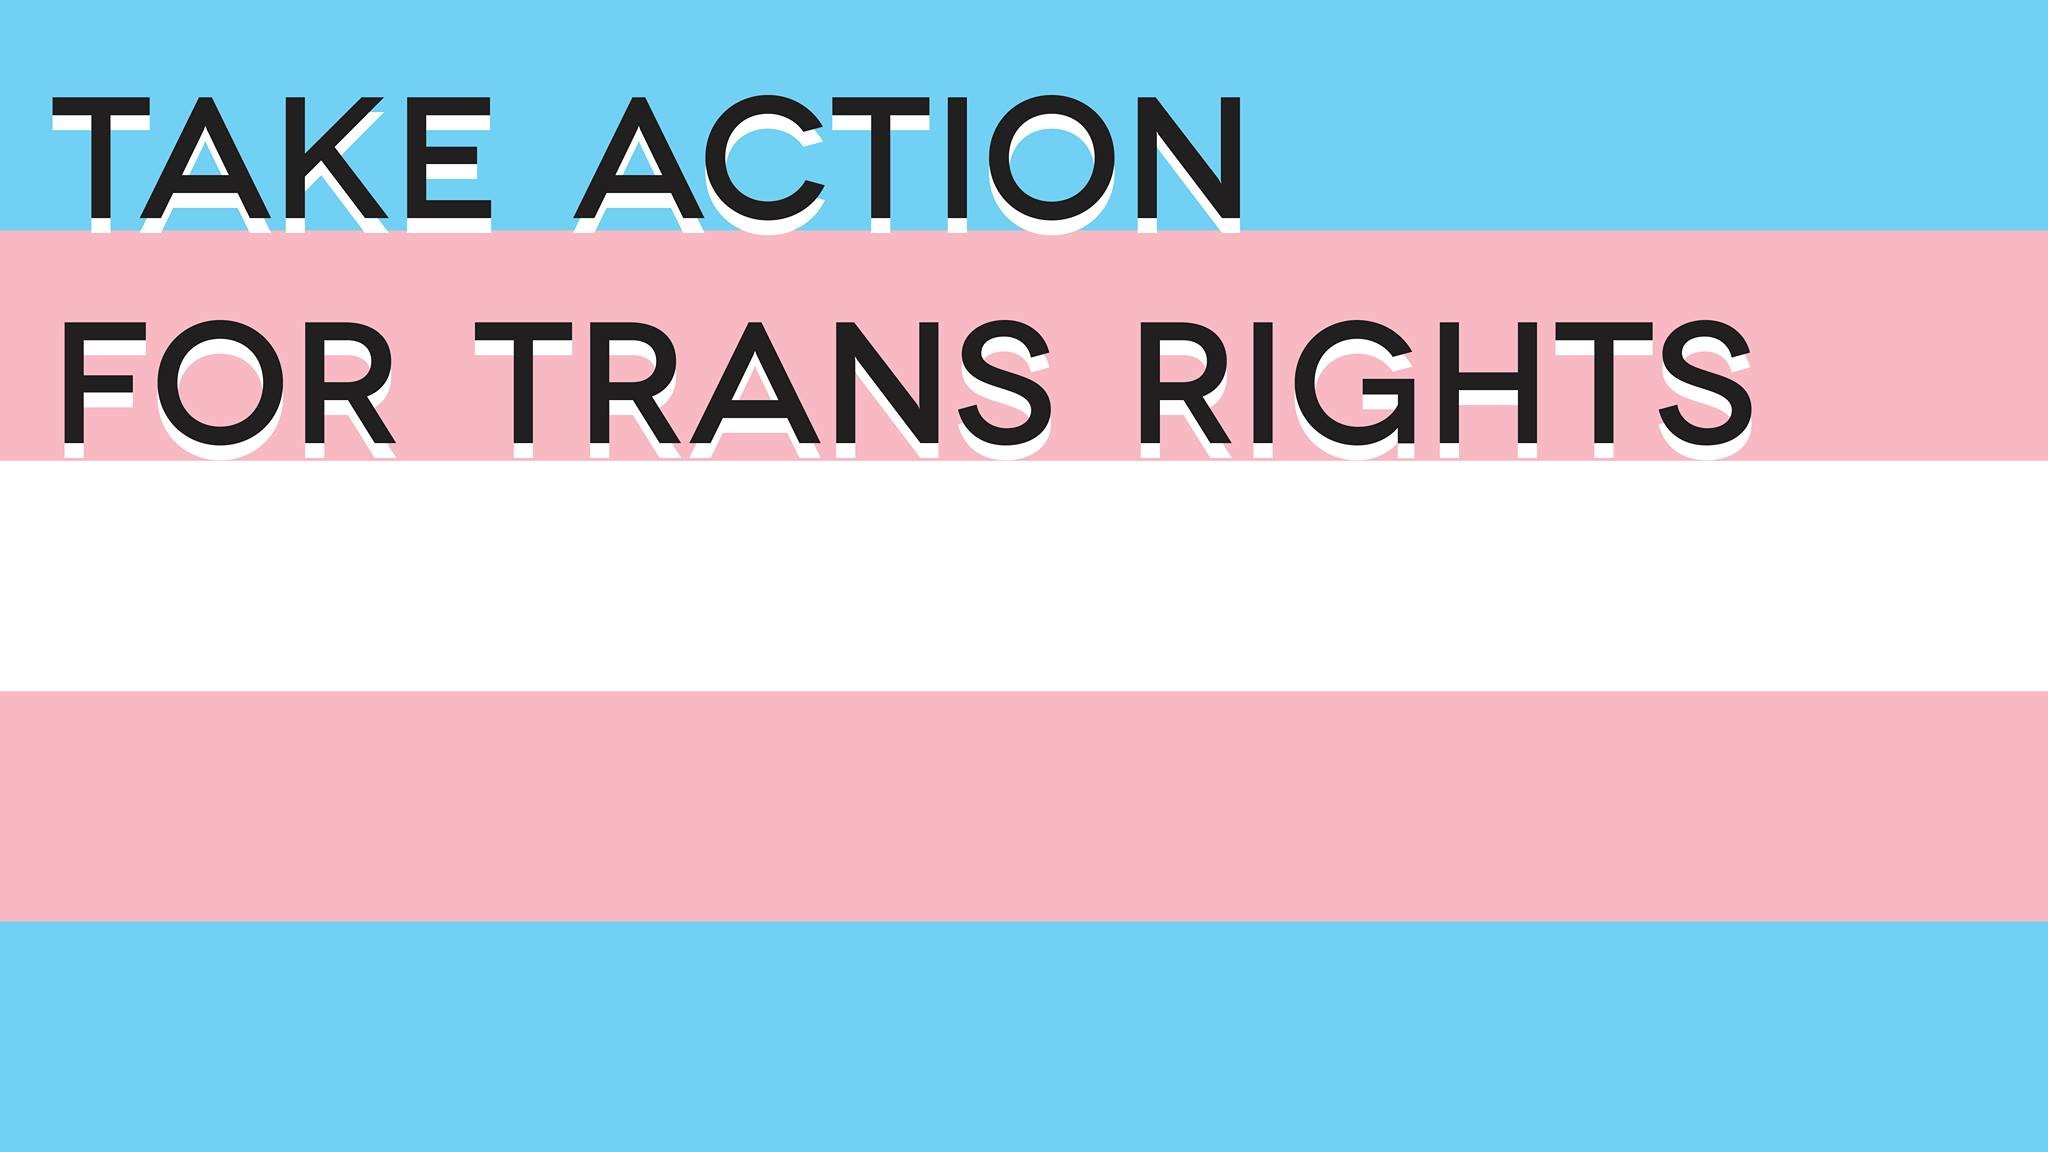 Take Action for Trans Rights!